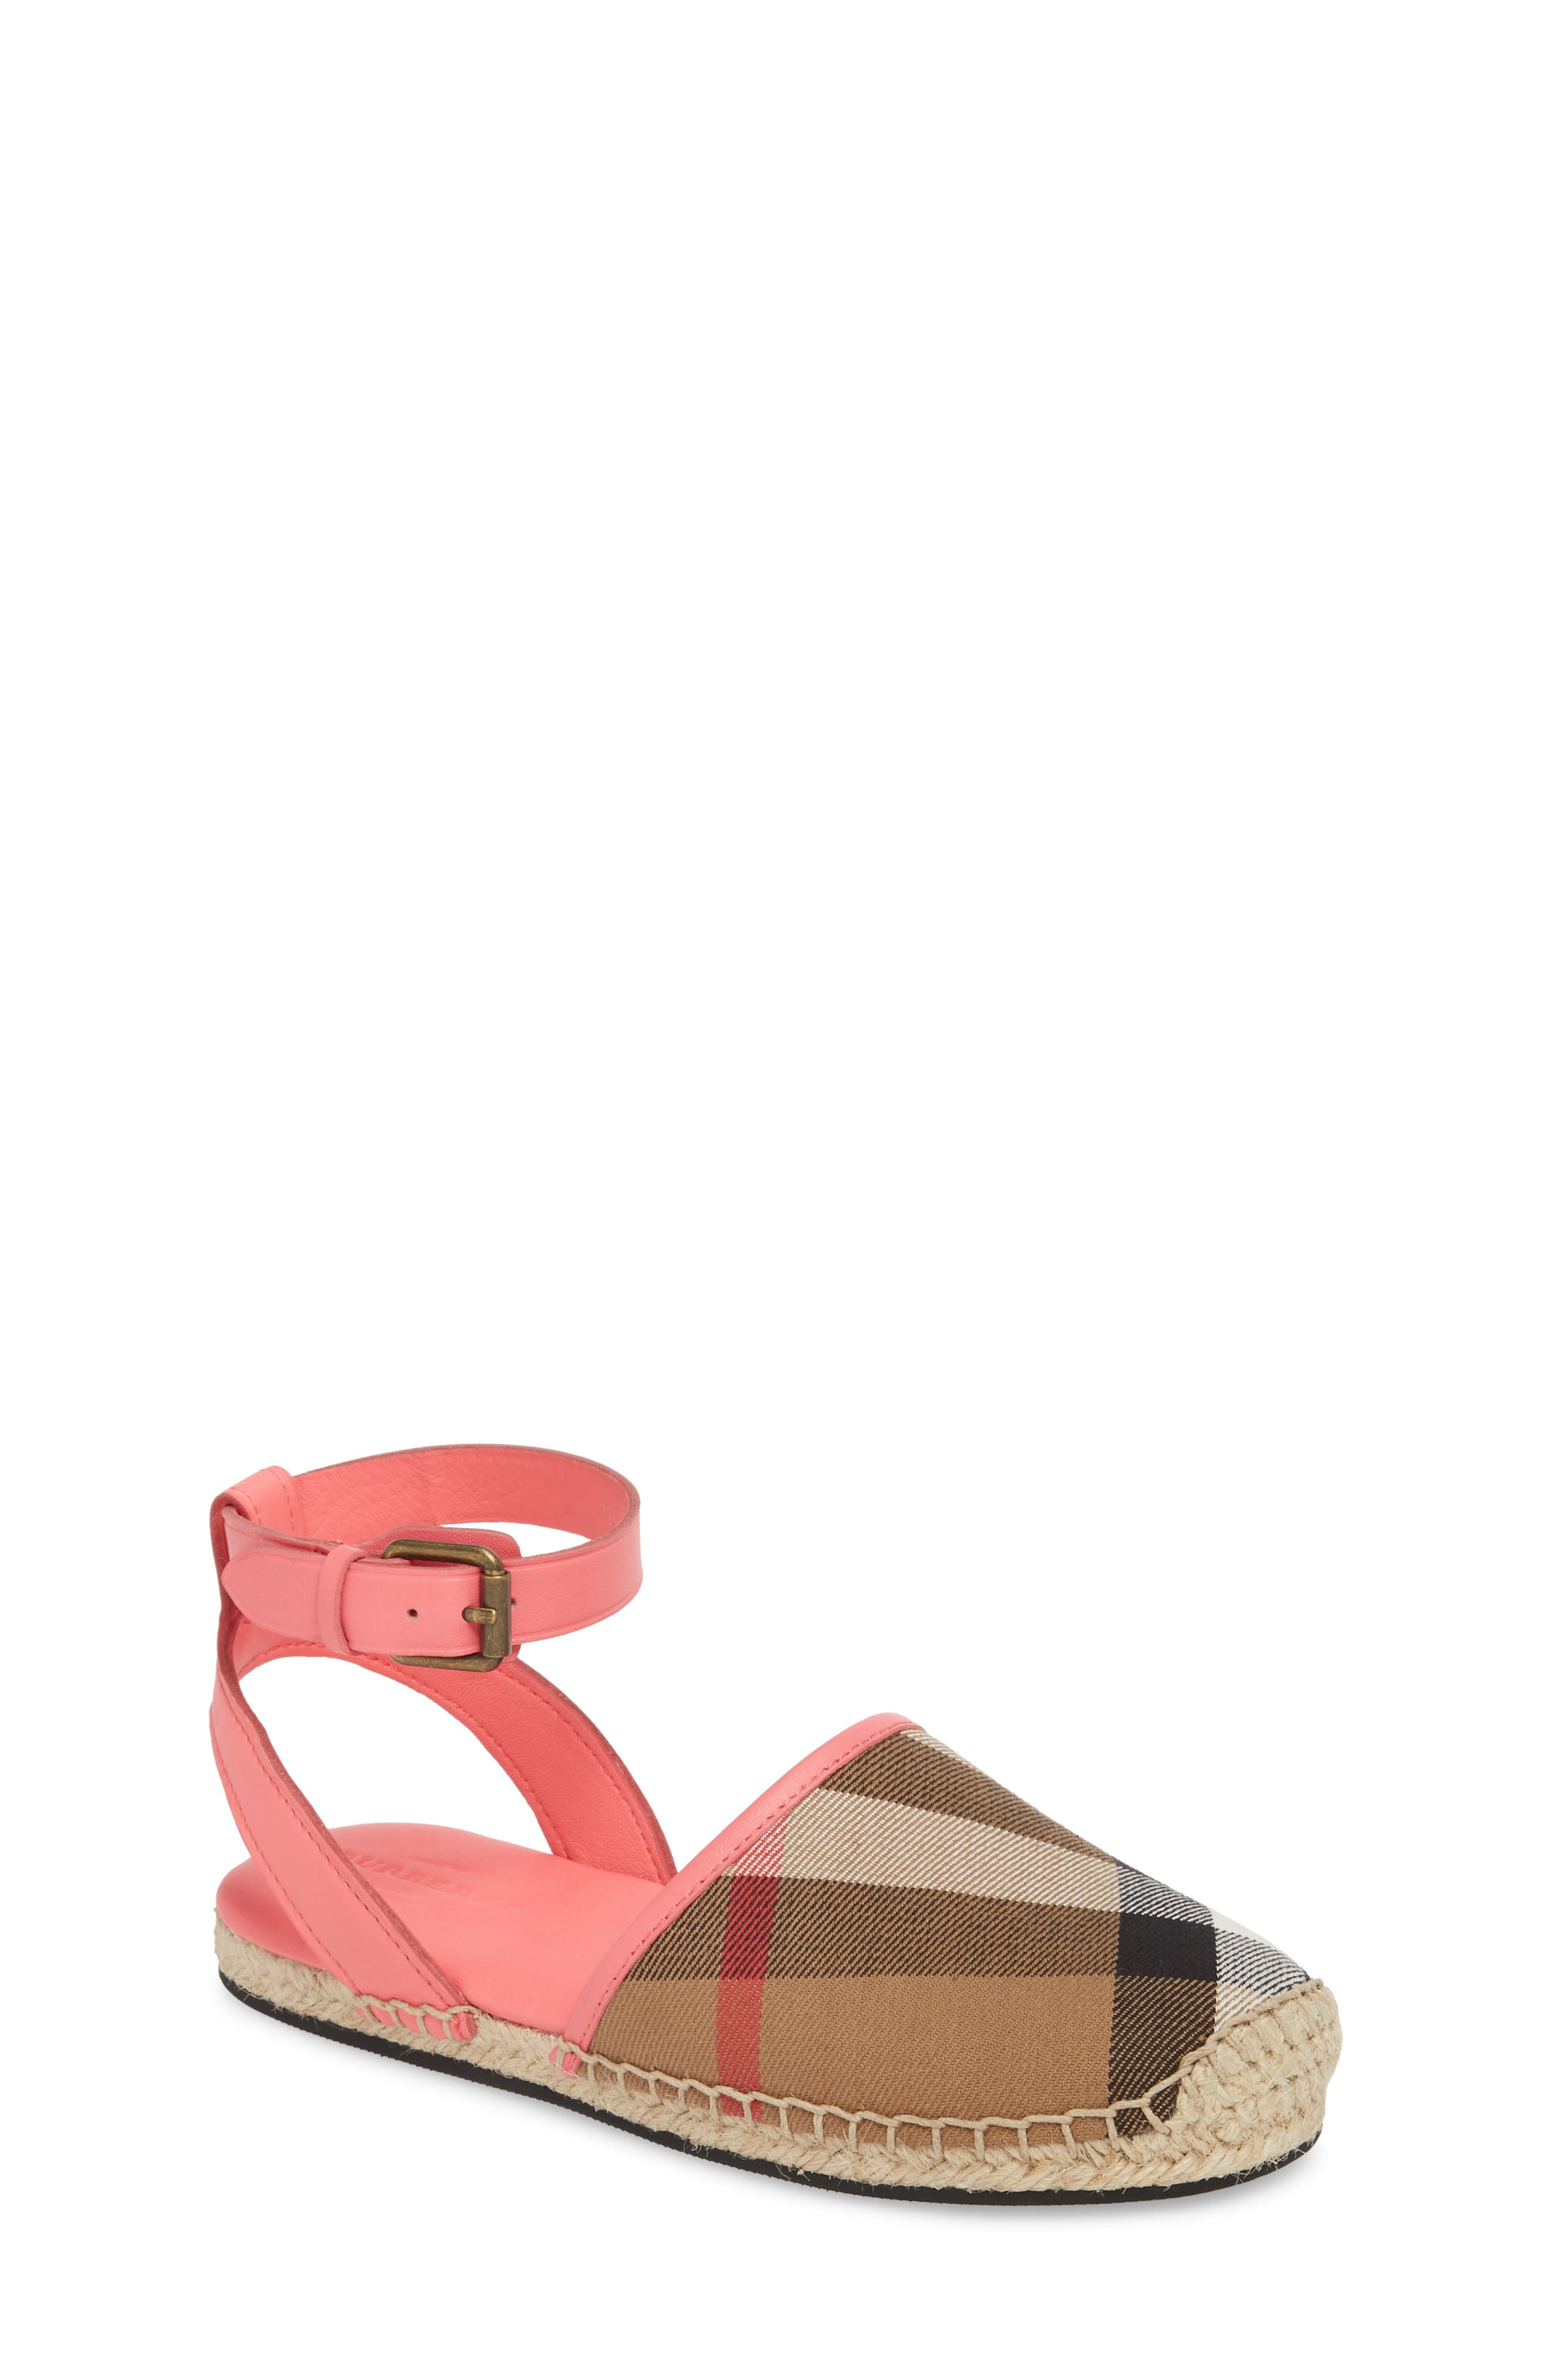 Burberry New Perth Espadrille Sandal (Walker, Toddler & Little Kid)